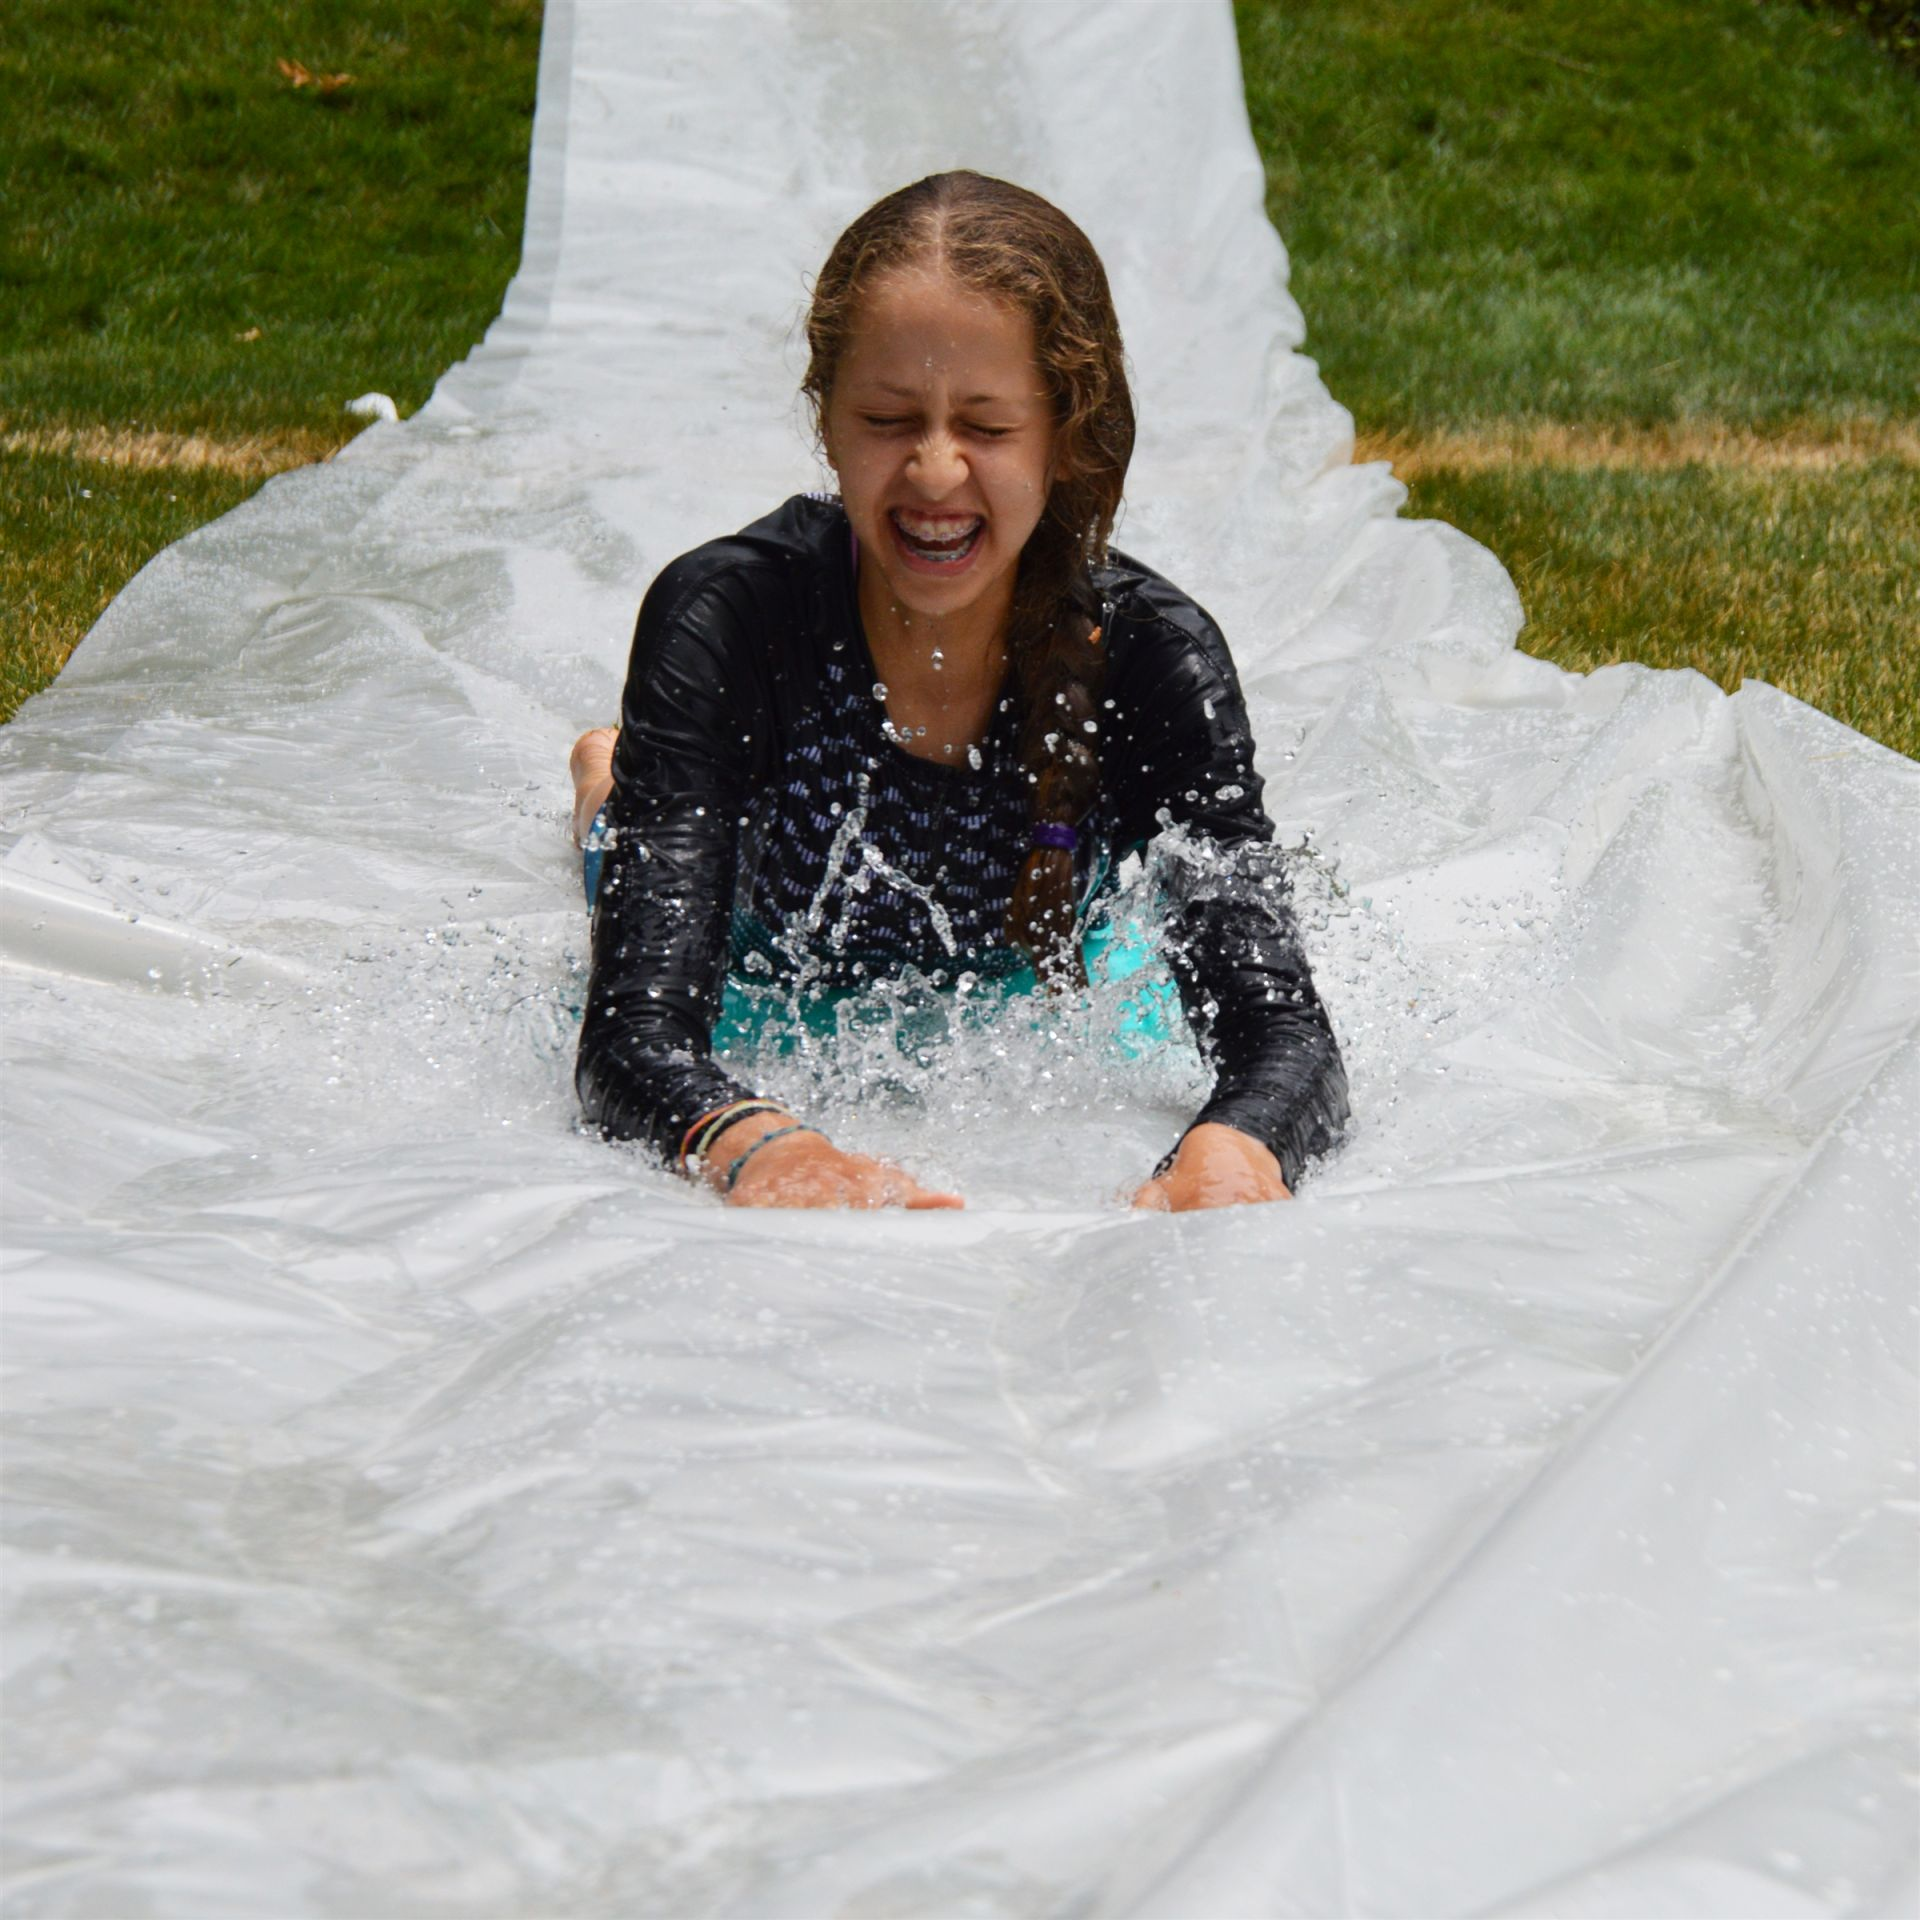 Sliding down a slip-n-slide during a fun Grier Summer event.